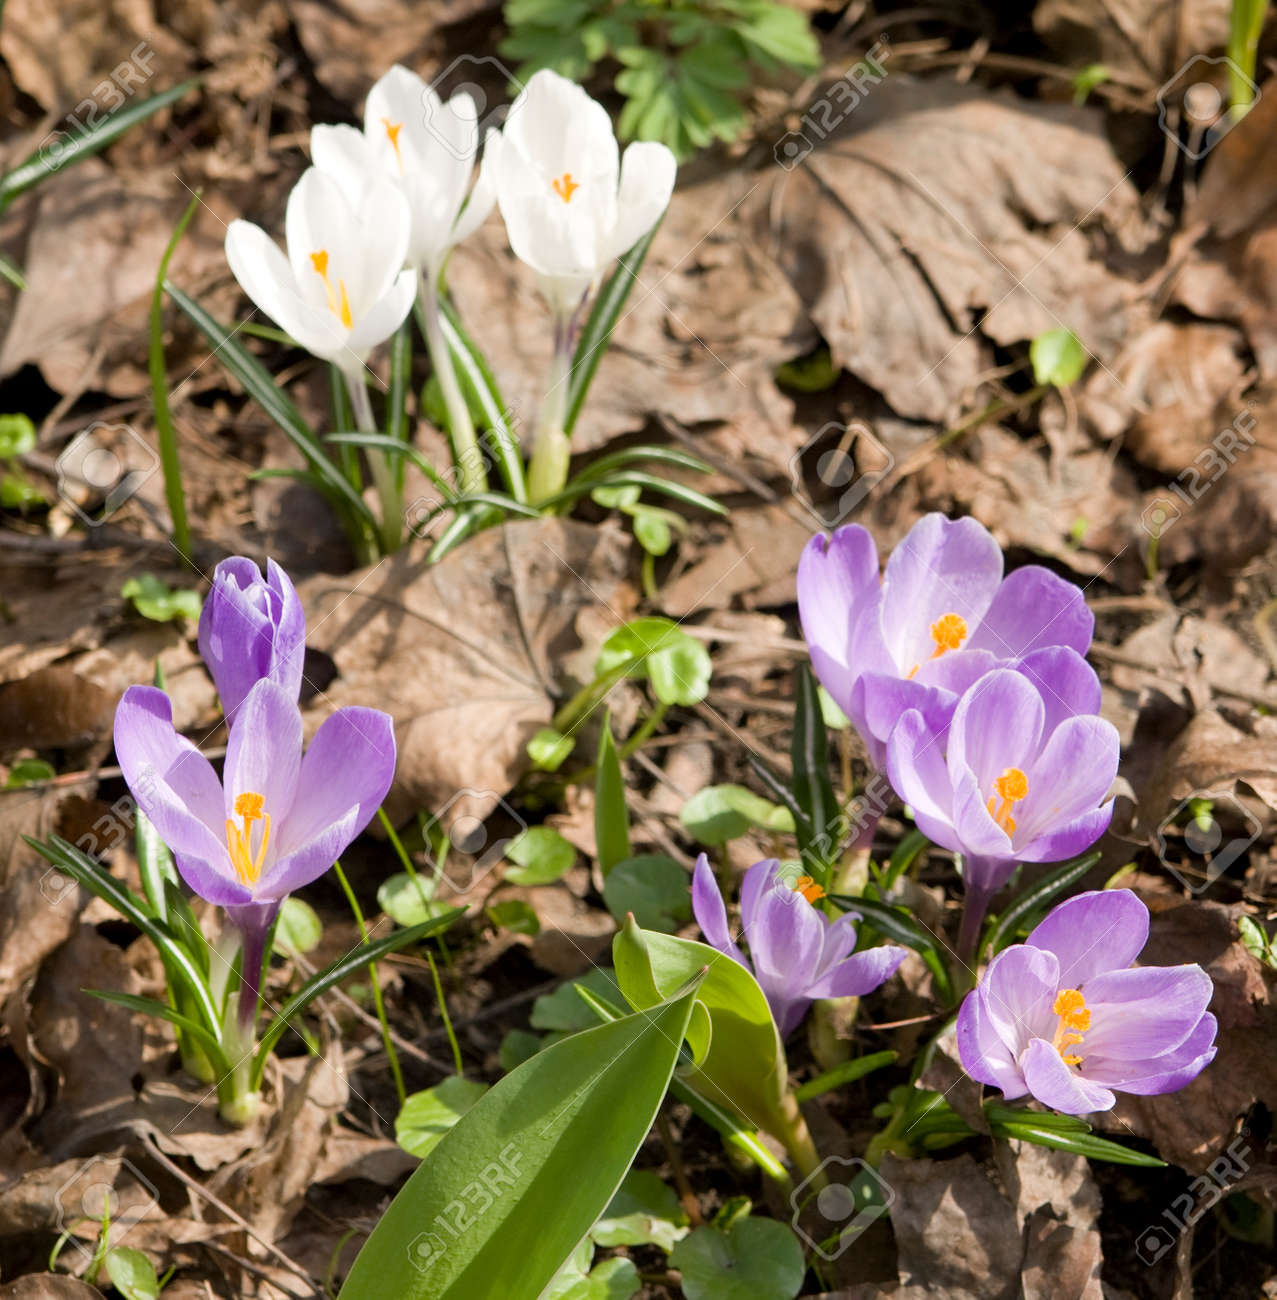 Few First Spring Flowers Crocuses Of Purple And White Colour Stock